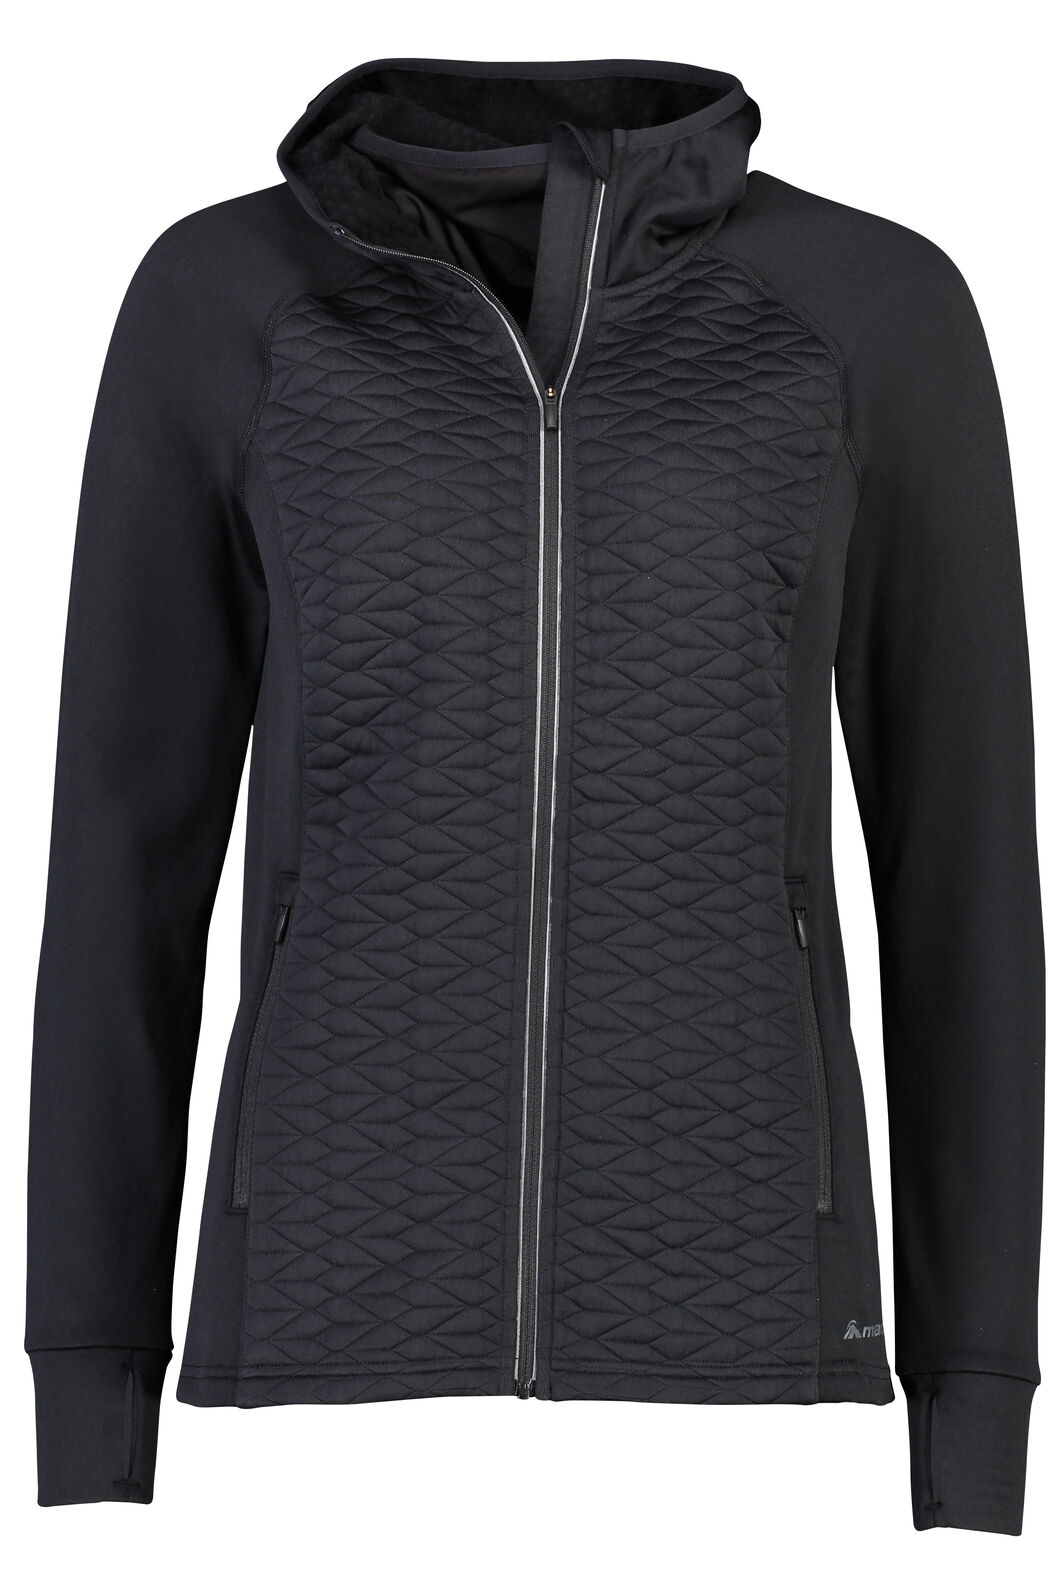 Blitz Jacket - Women's, Black, hi-res